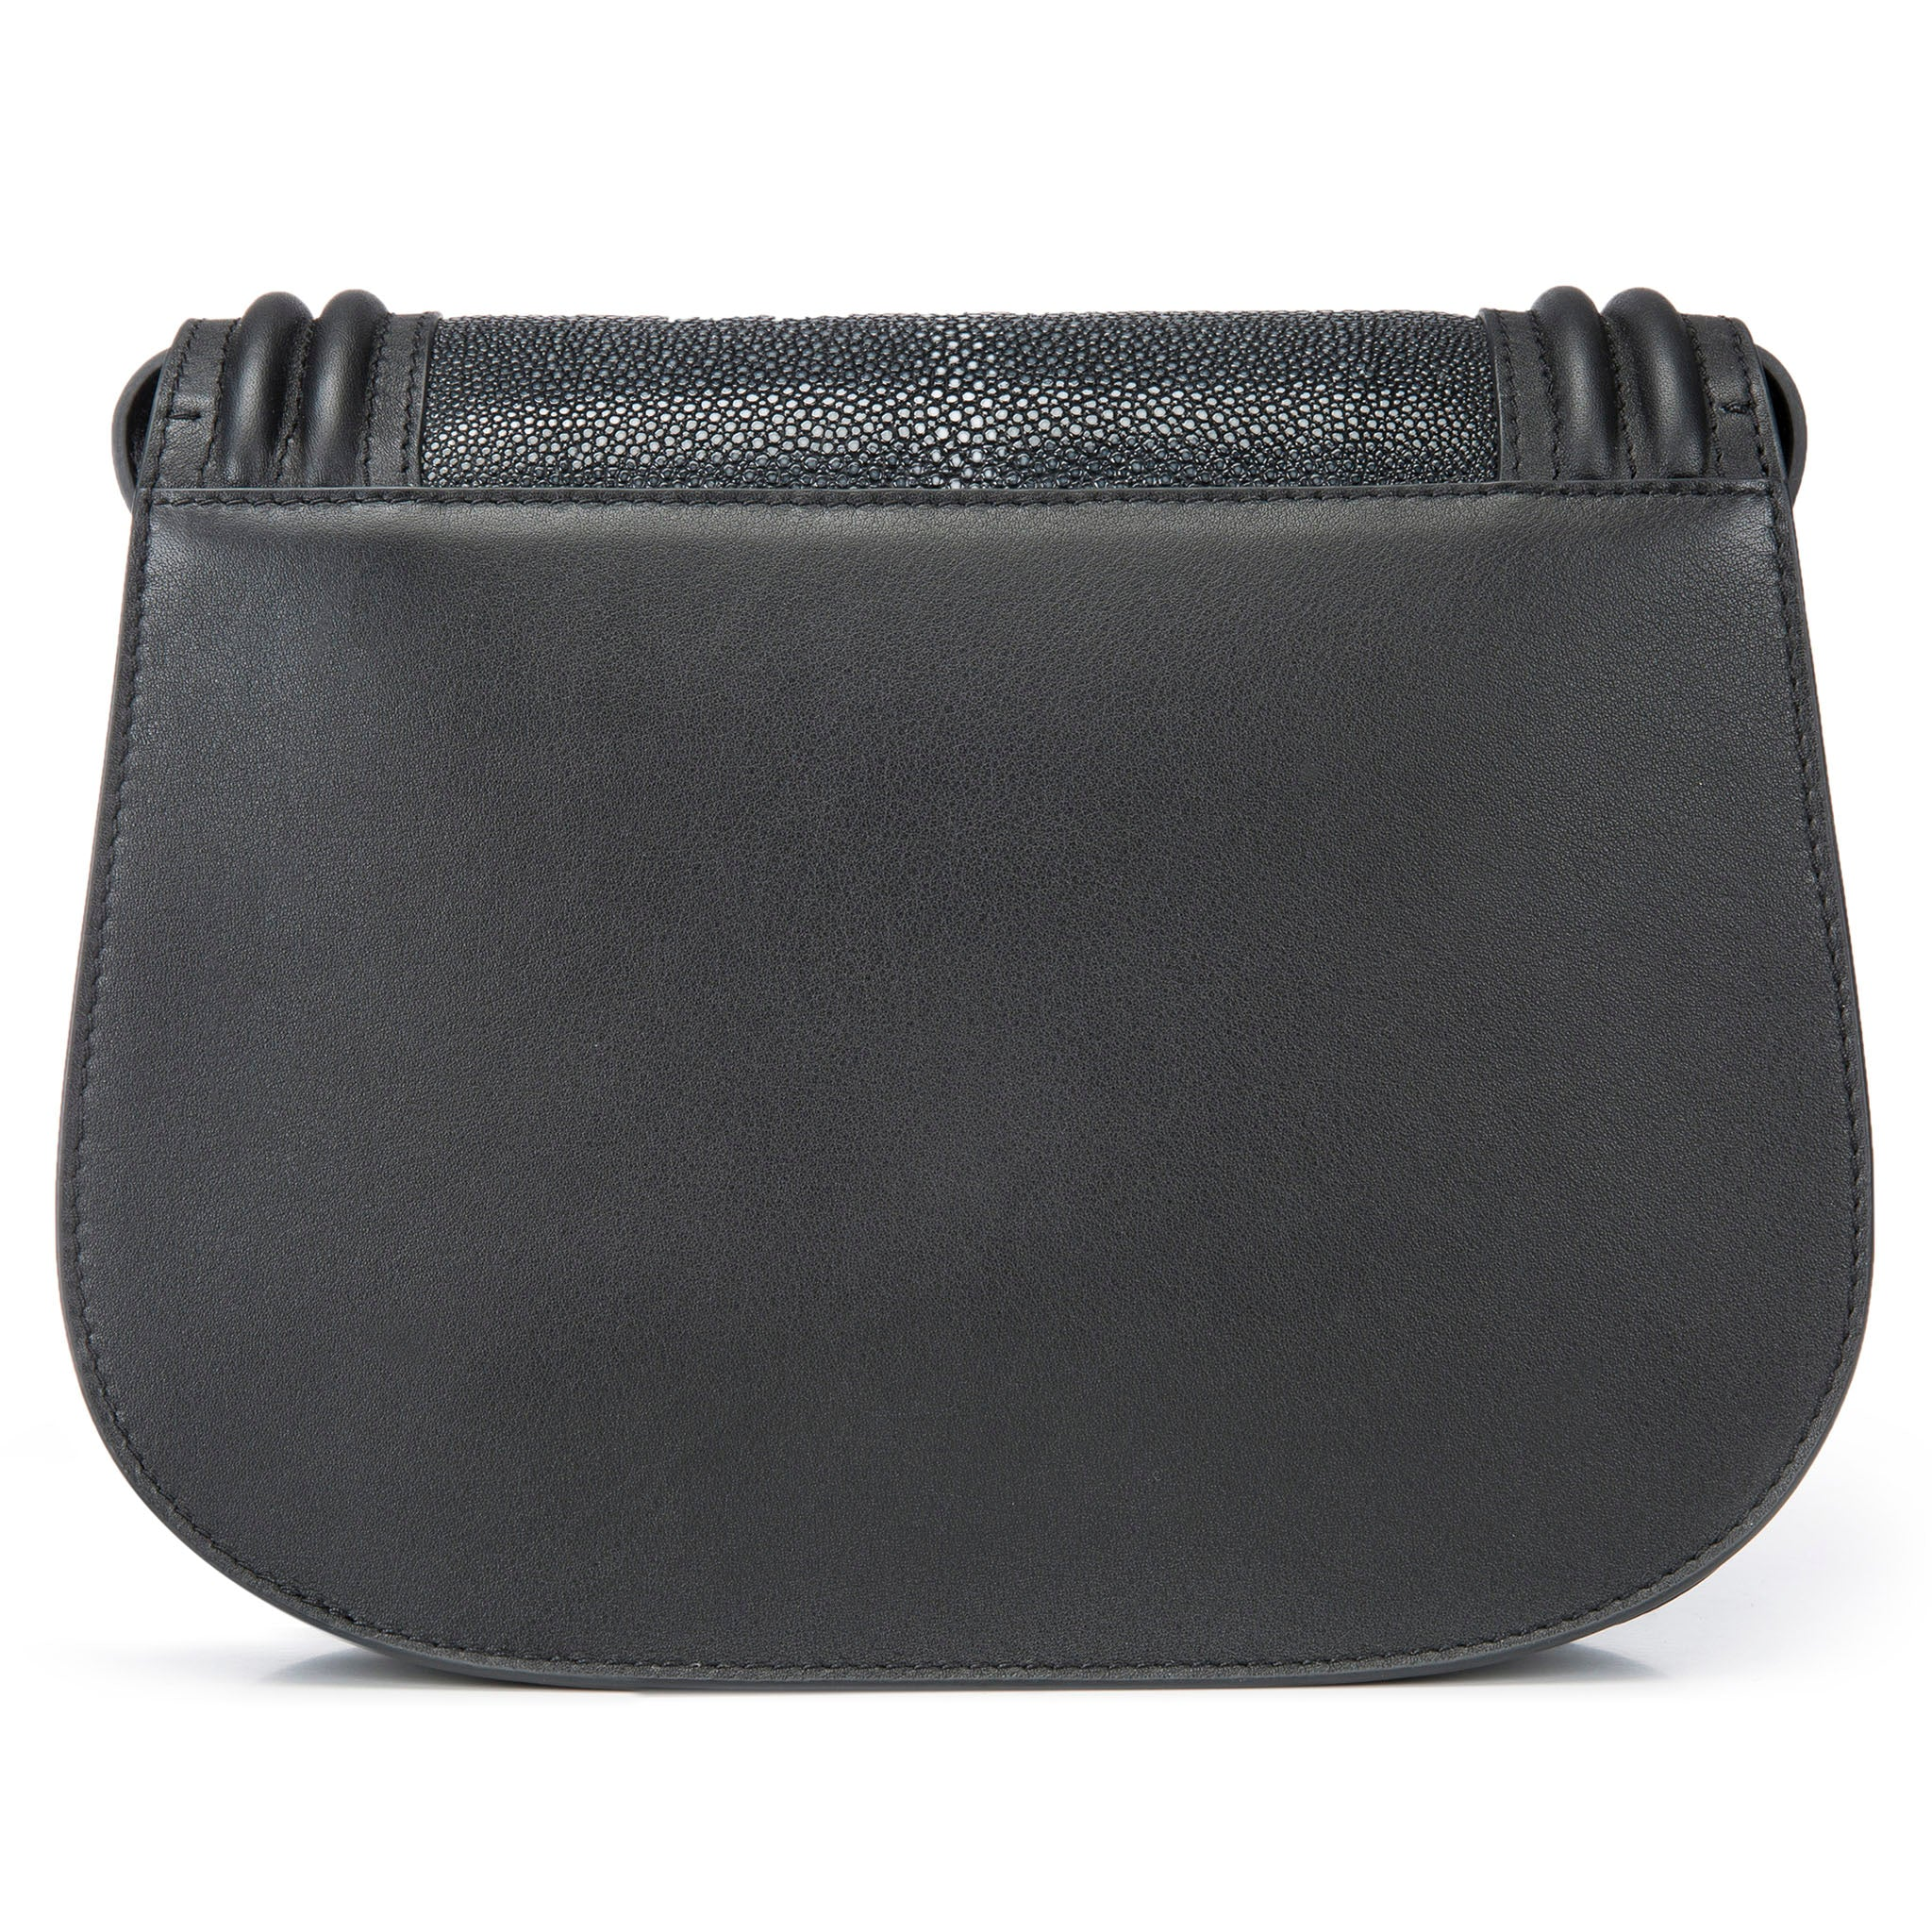 Black Corded Leather Framing Shagreen Front Panel Saddle Bag Back View Hazel - Vivo Direct